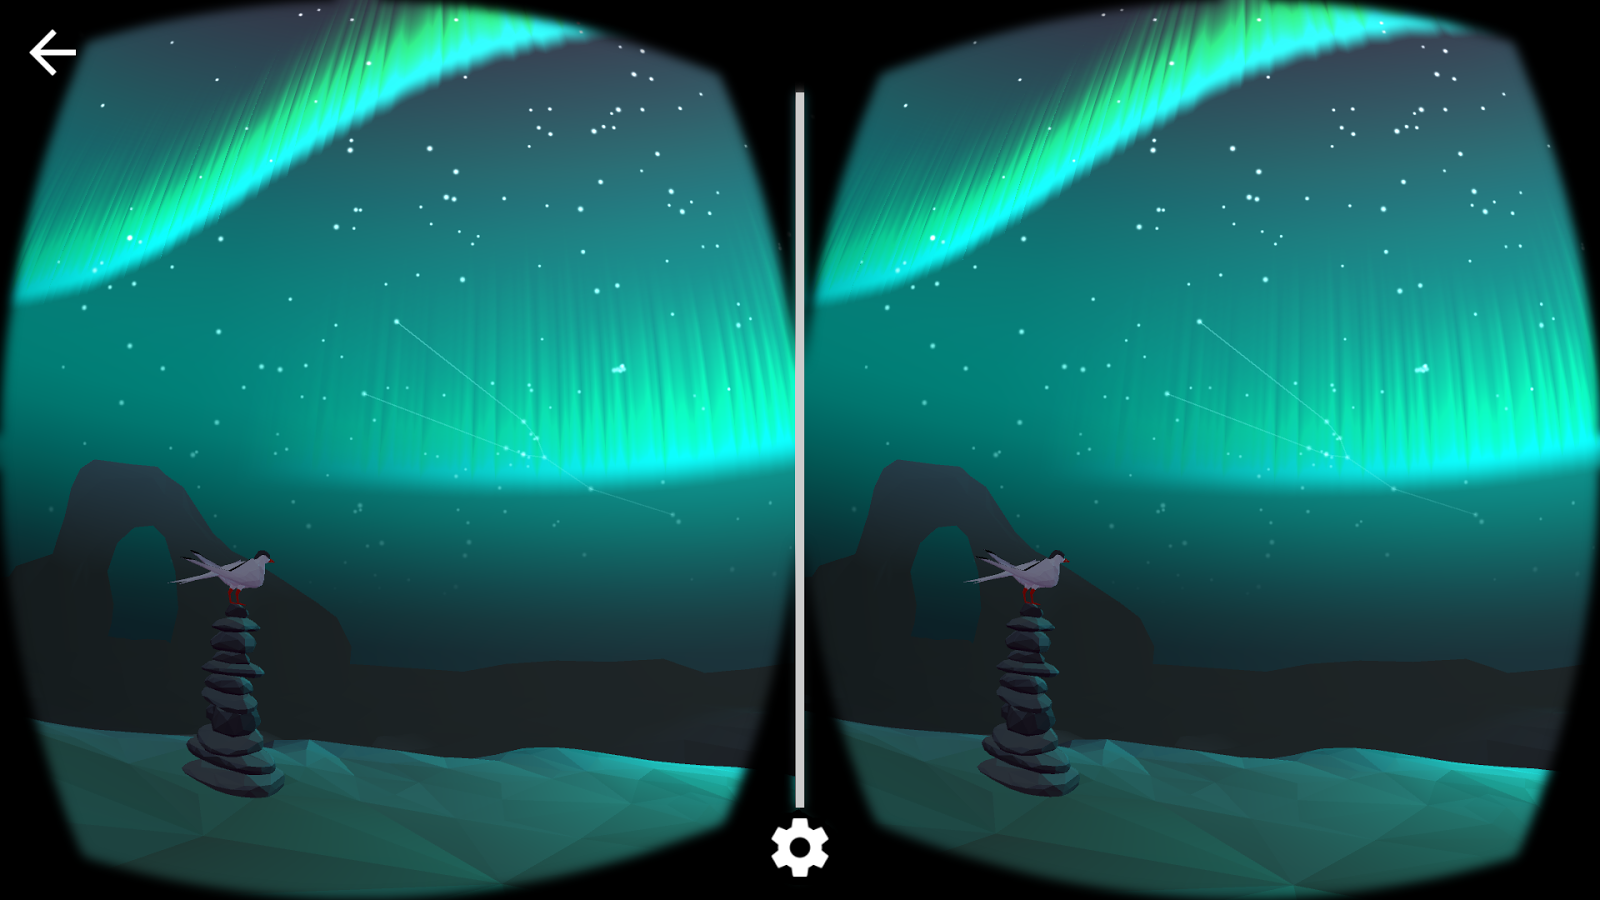 10 things to do in VR: the best virtual reality apps for